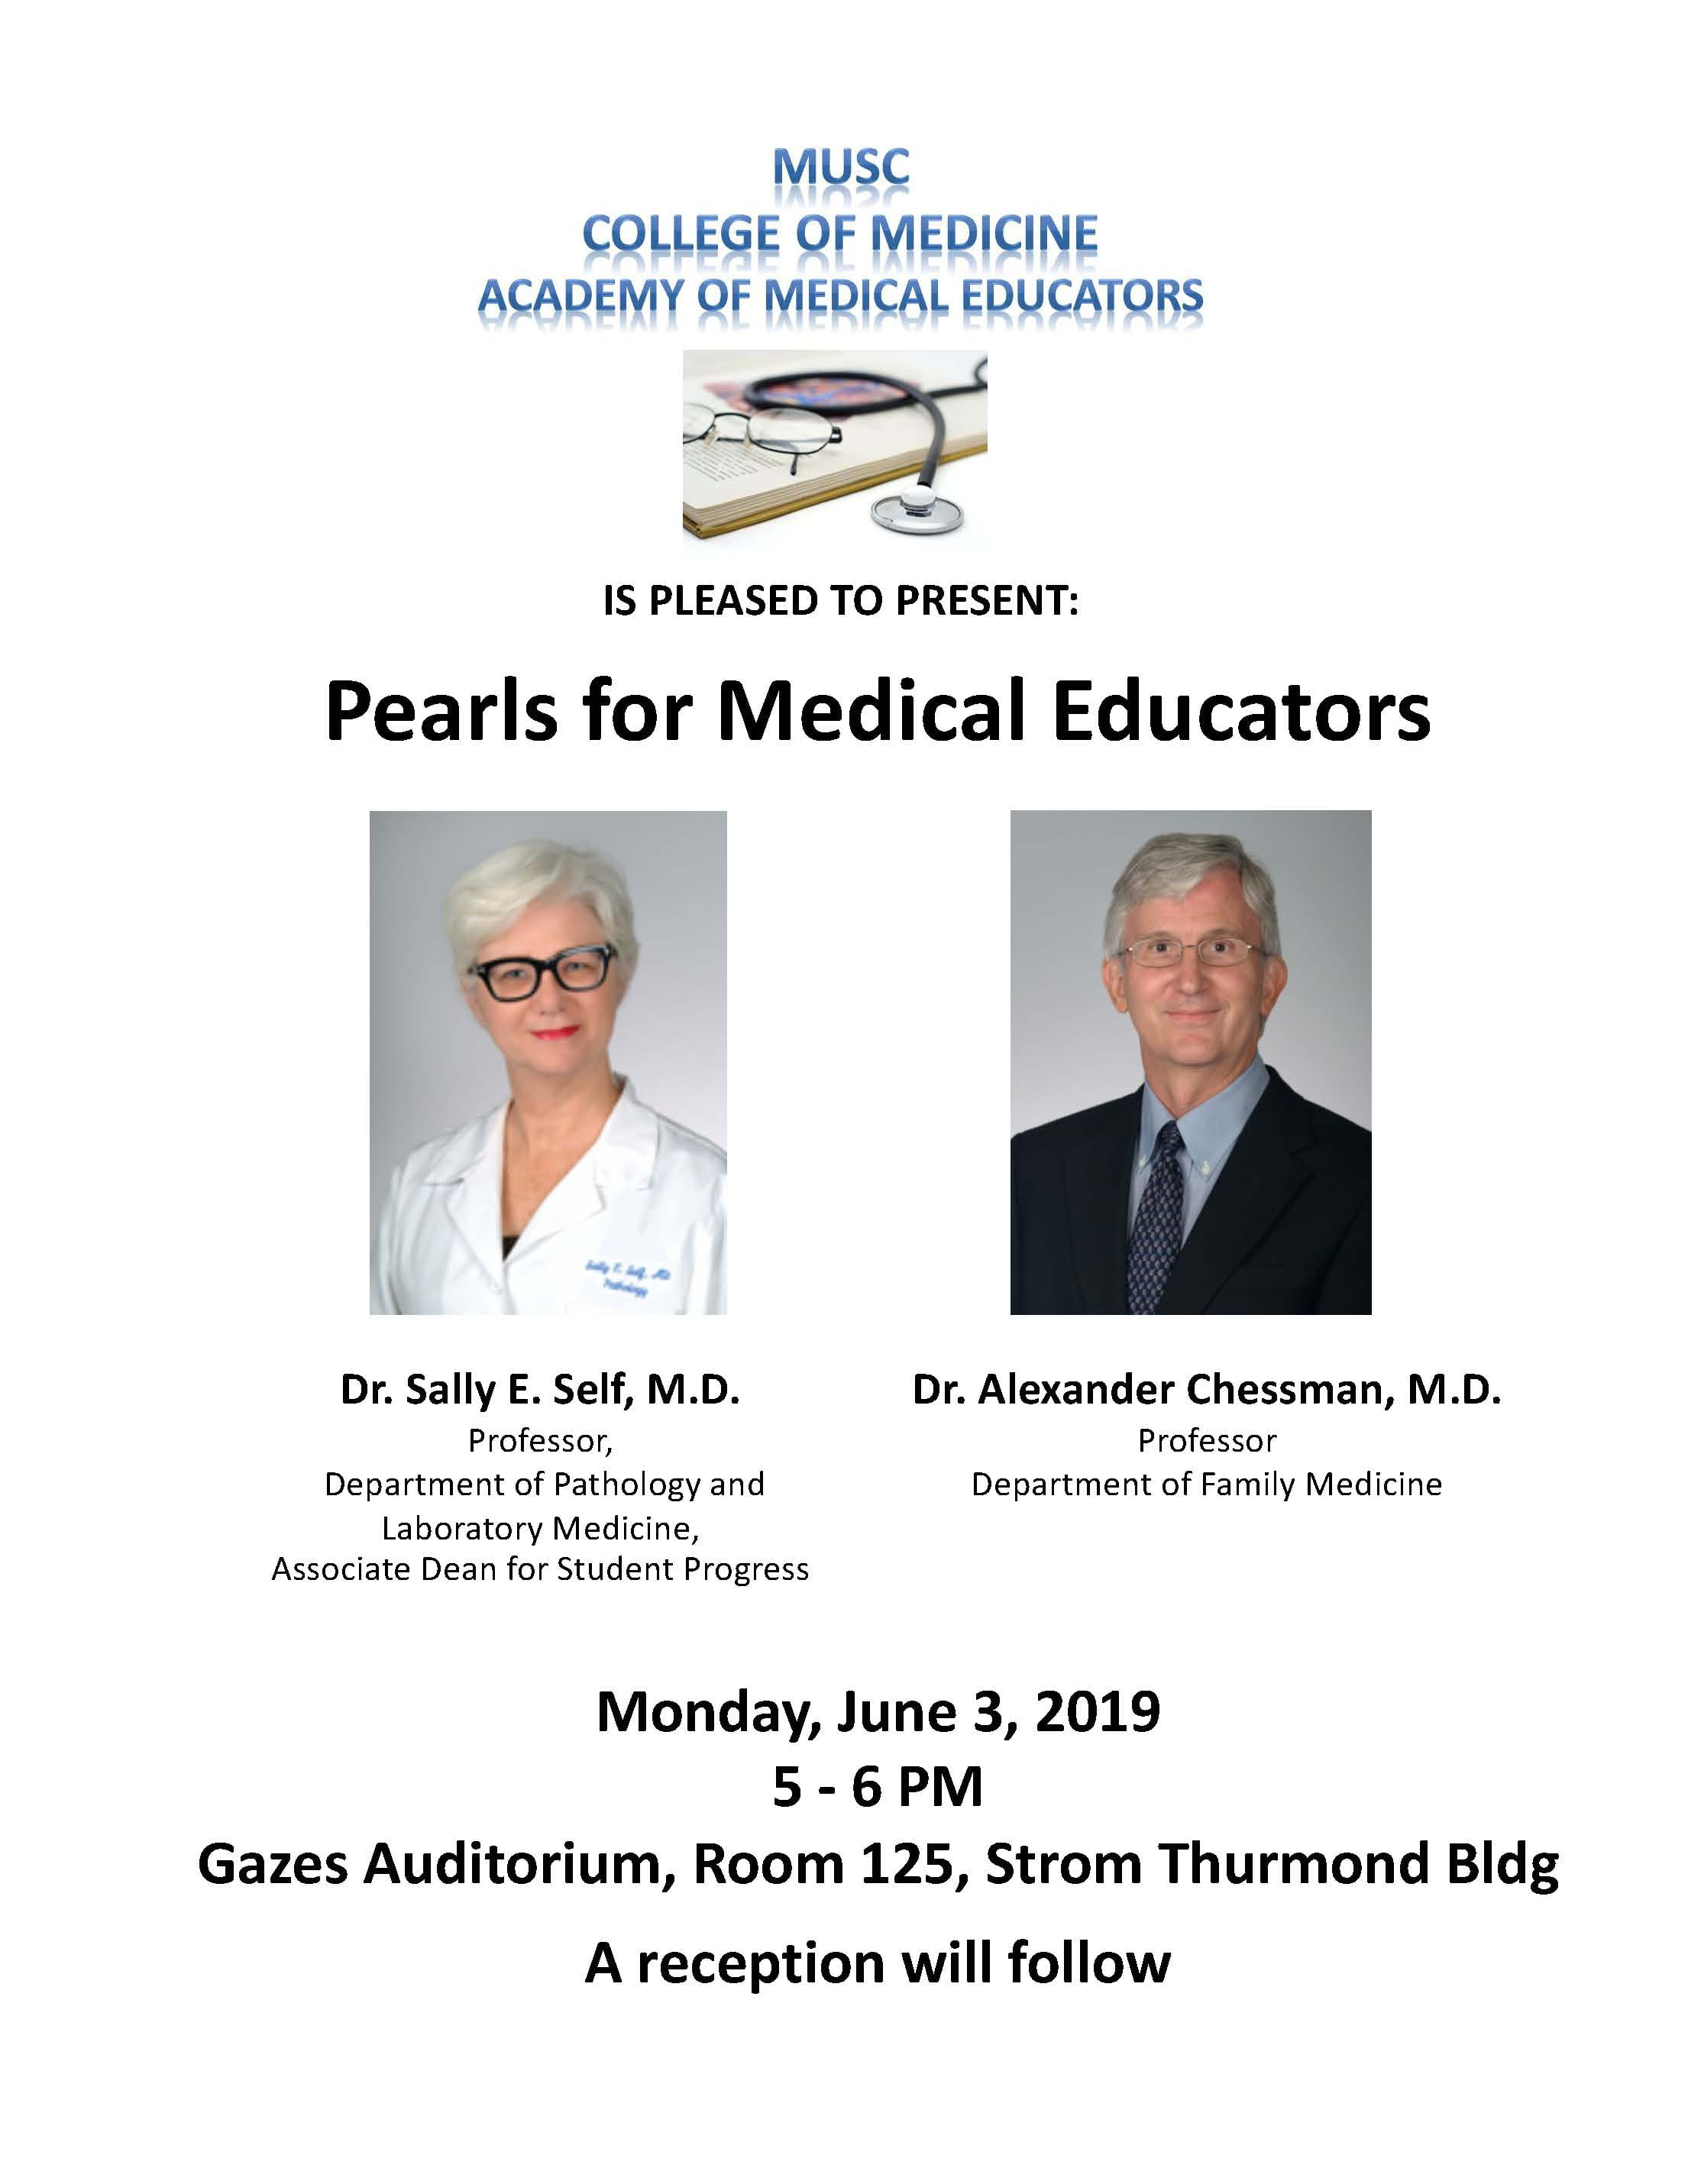 AME Pearls Lecture Flyer with photo's of Dr. Sally E. Self and Dr. Alexander Chessman